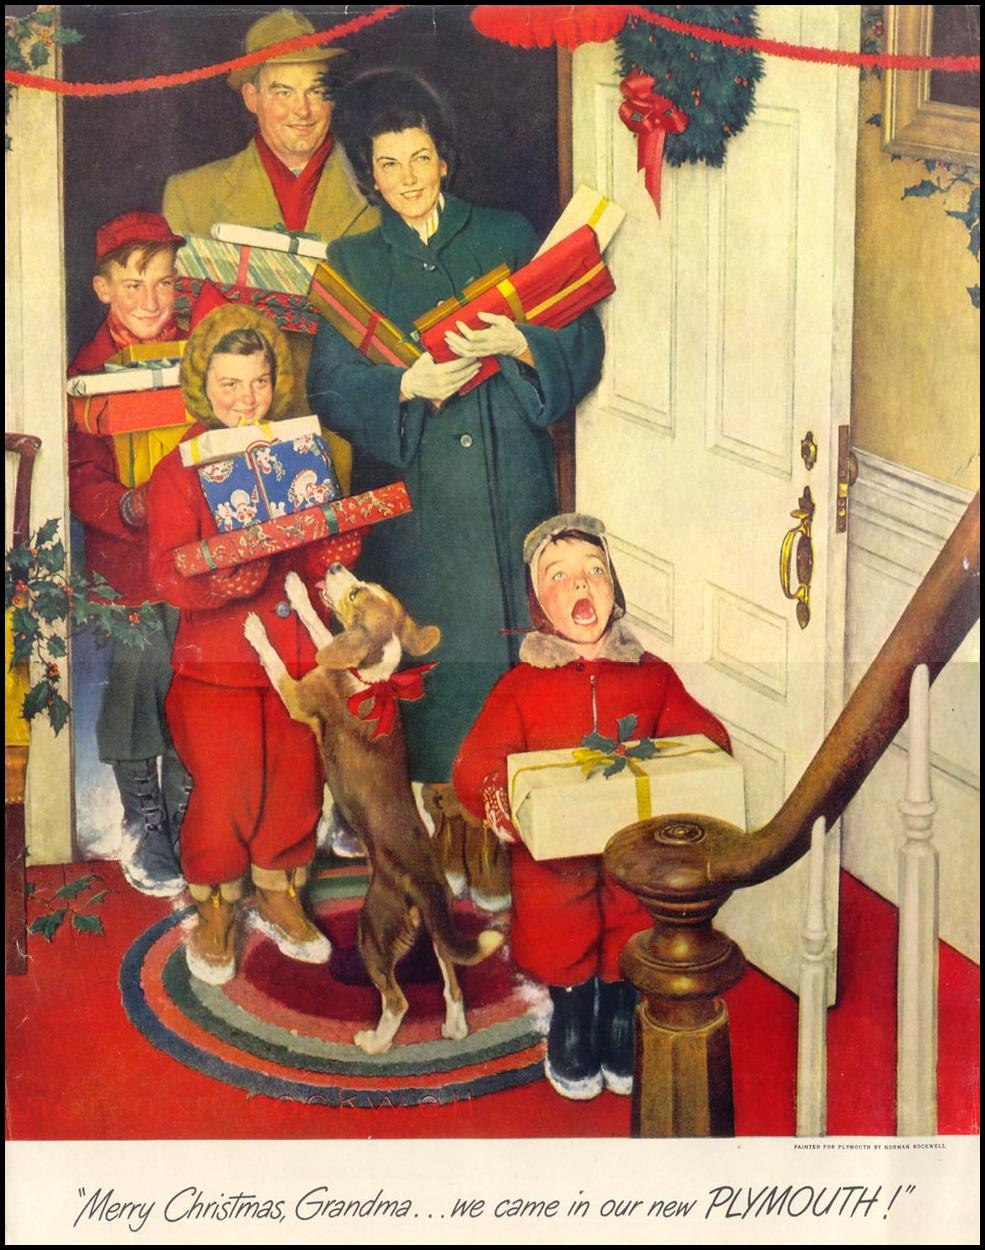 A Norman Rockwell Christmas